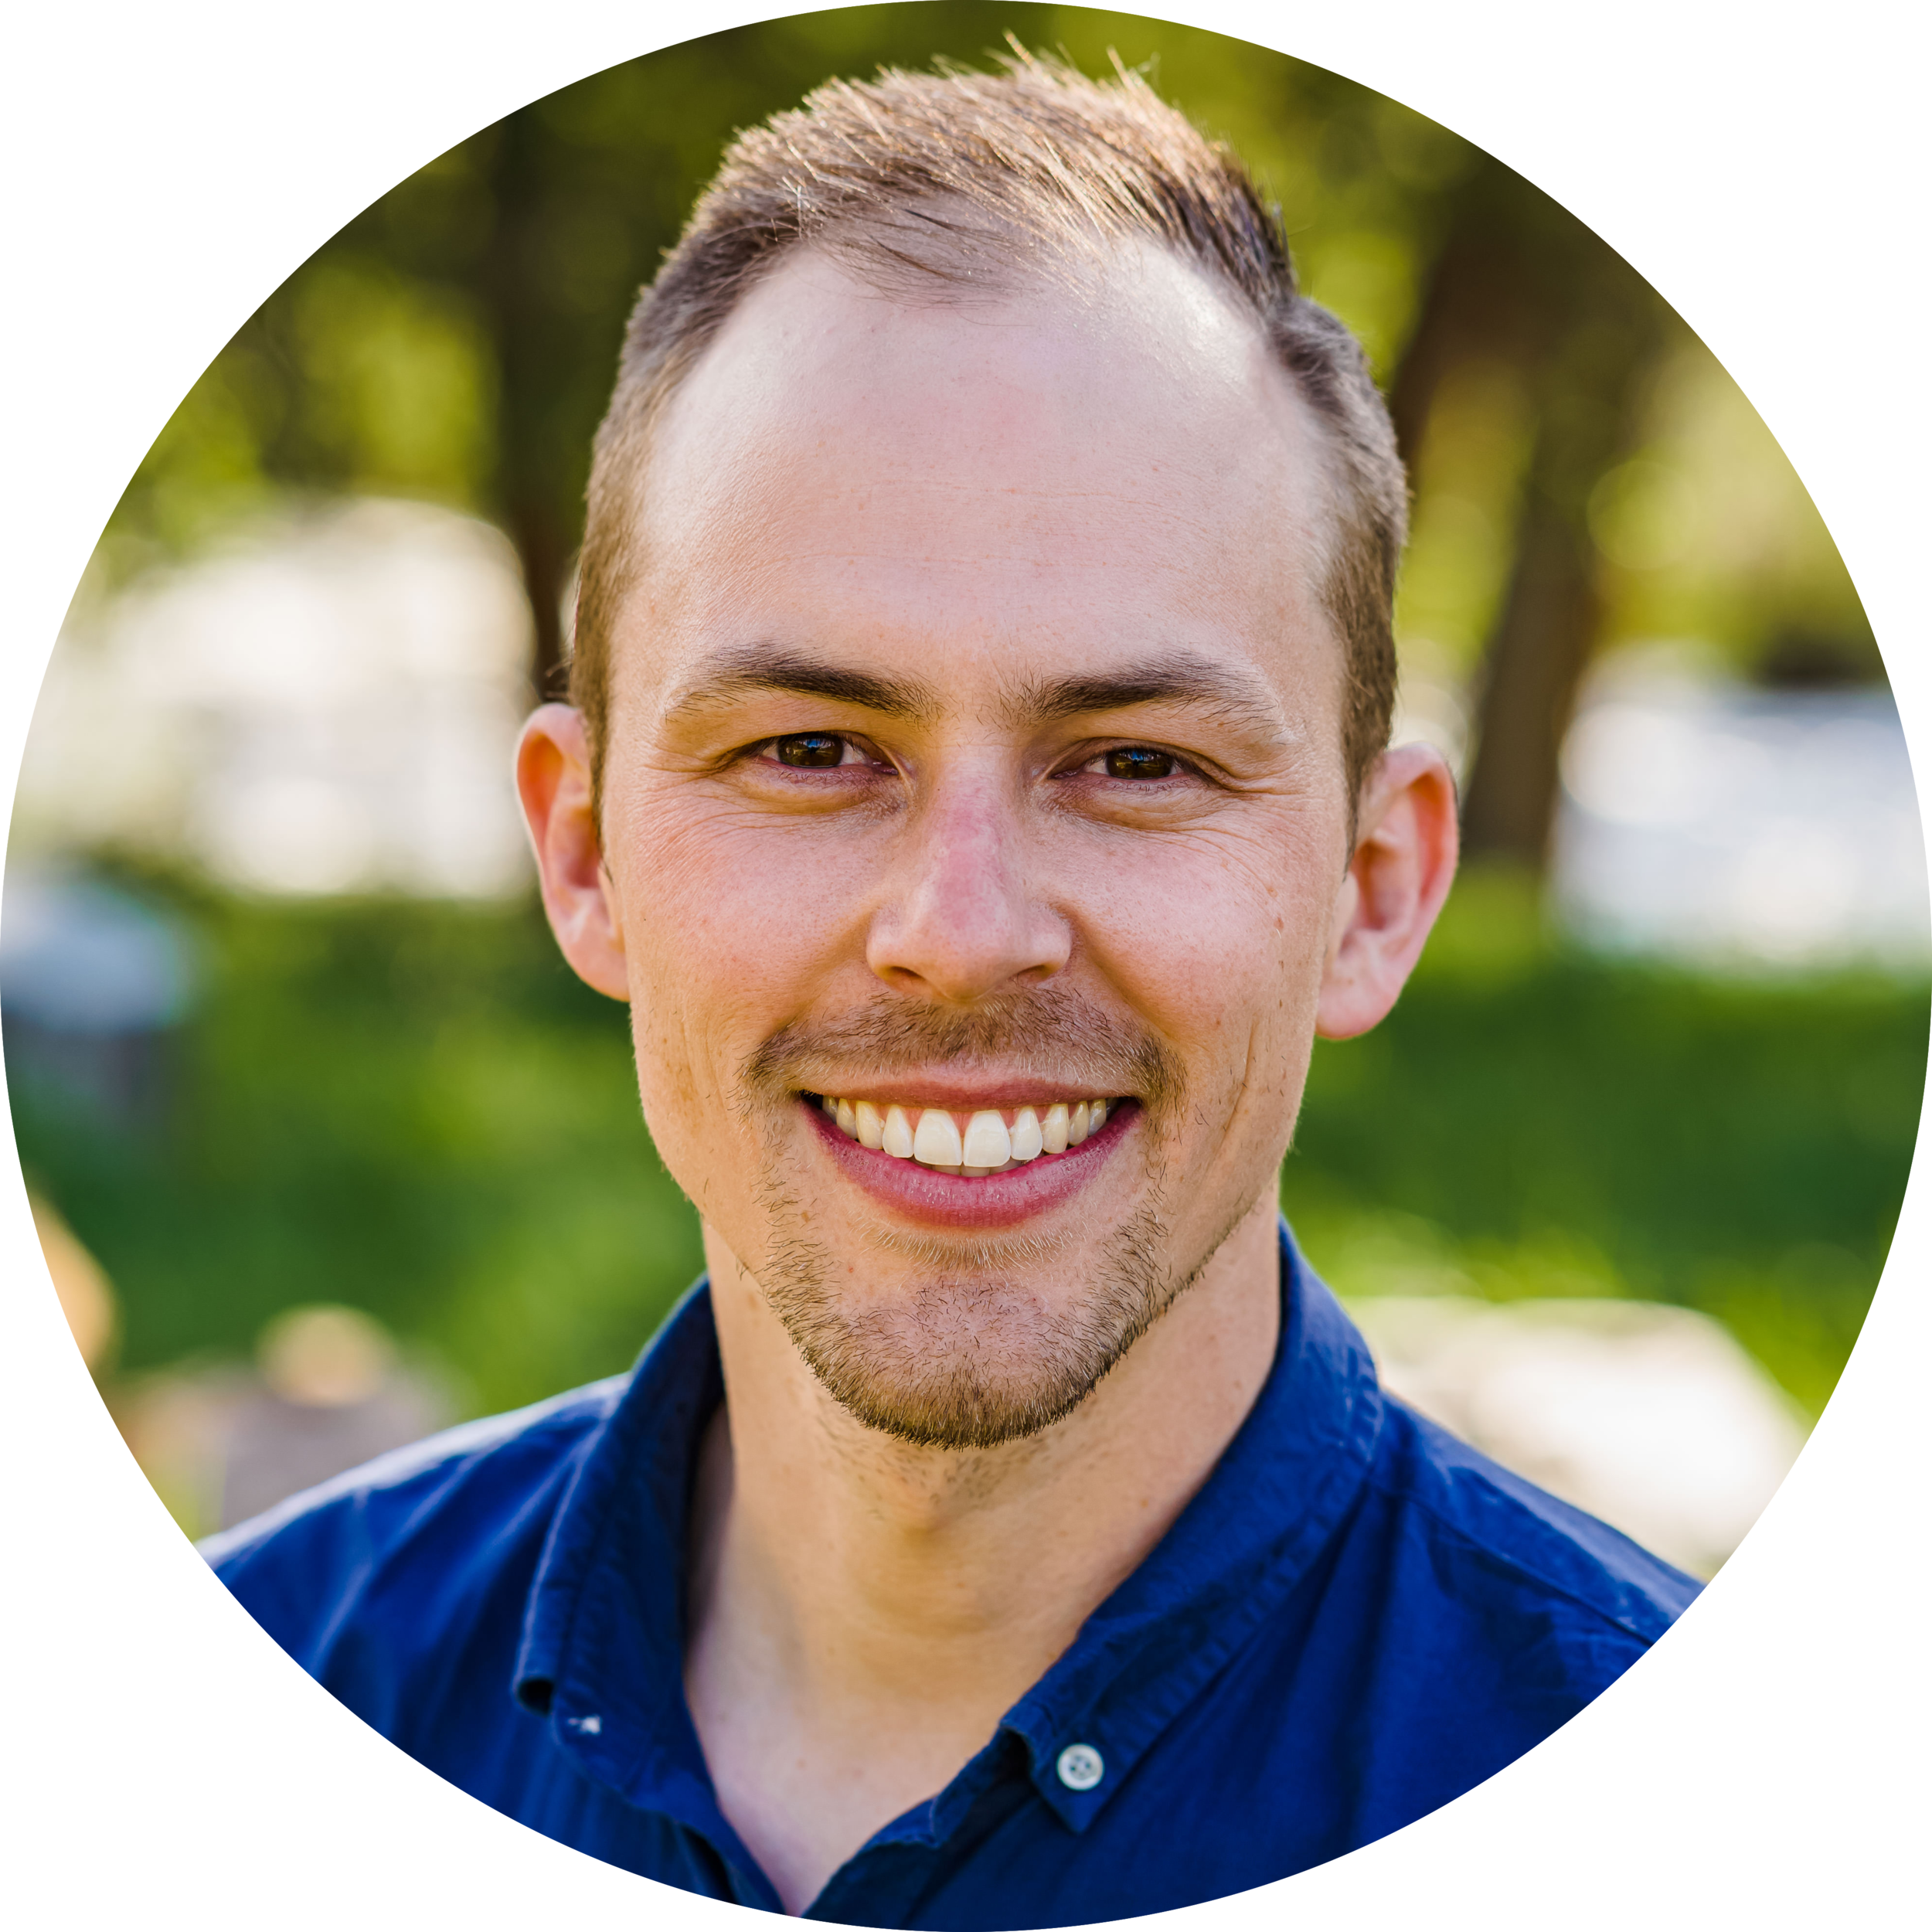 Ben Ruhl - Ben Ruhl is the lead pastor of BeFree Community Church in Alton, NH. He's a graduate of Gordon-Conwell Theological Seminary and Moody Bible Institute. He is husband to Olivia and father to Davie.